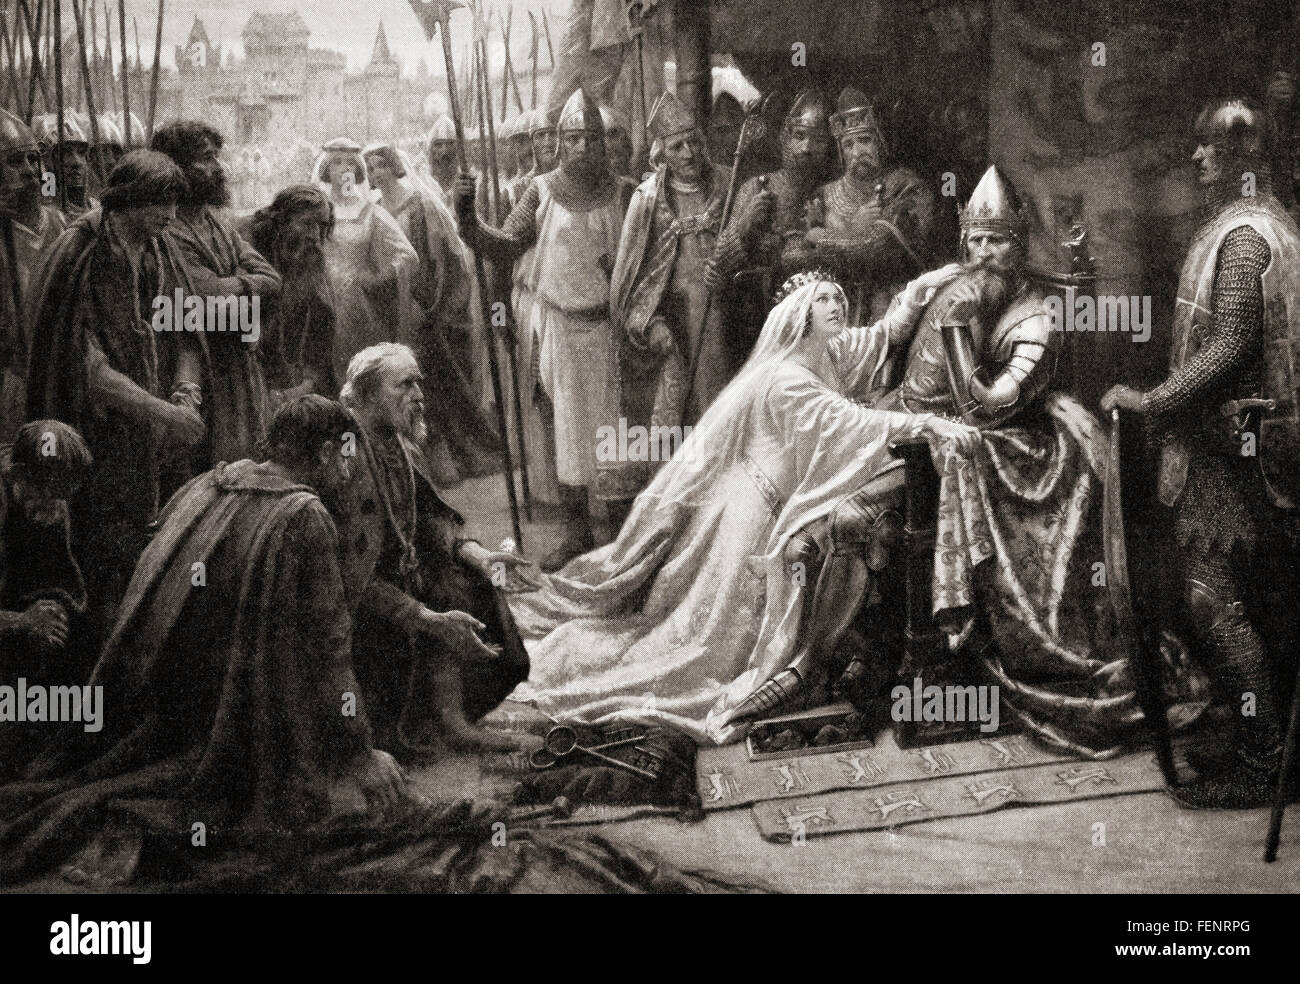 The wife of King Edward III, queen Philippa of Hainault, intercedes before her husband to ask that the lives of - Stock Image